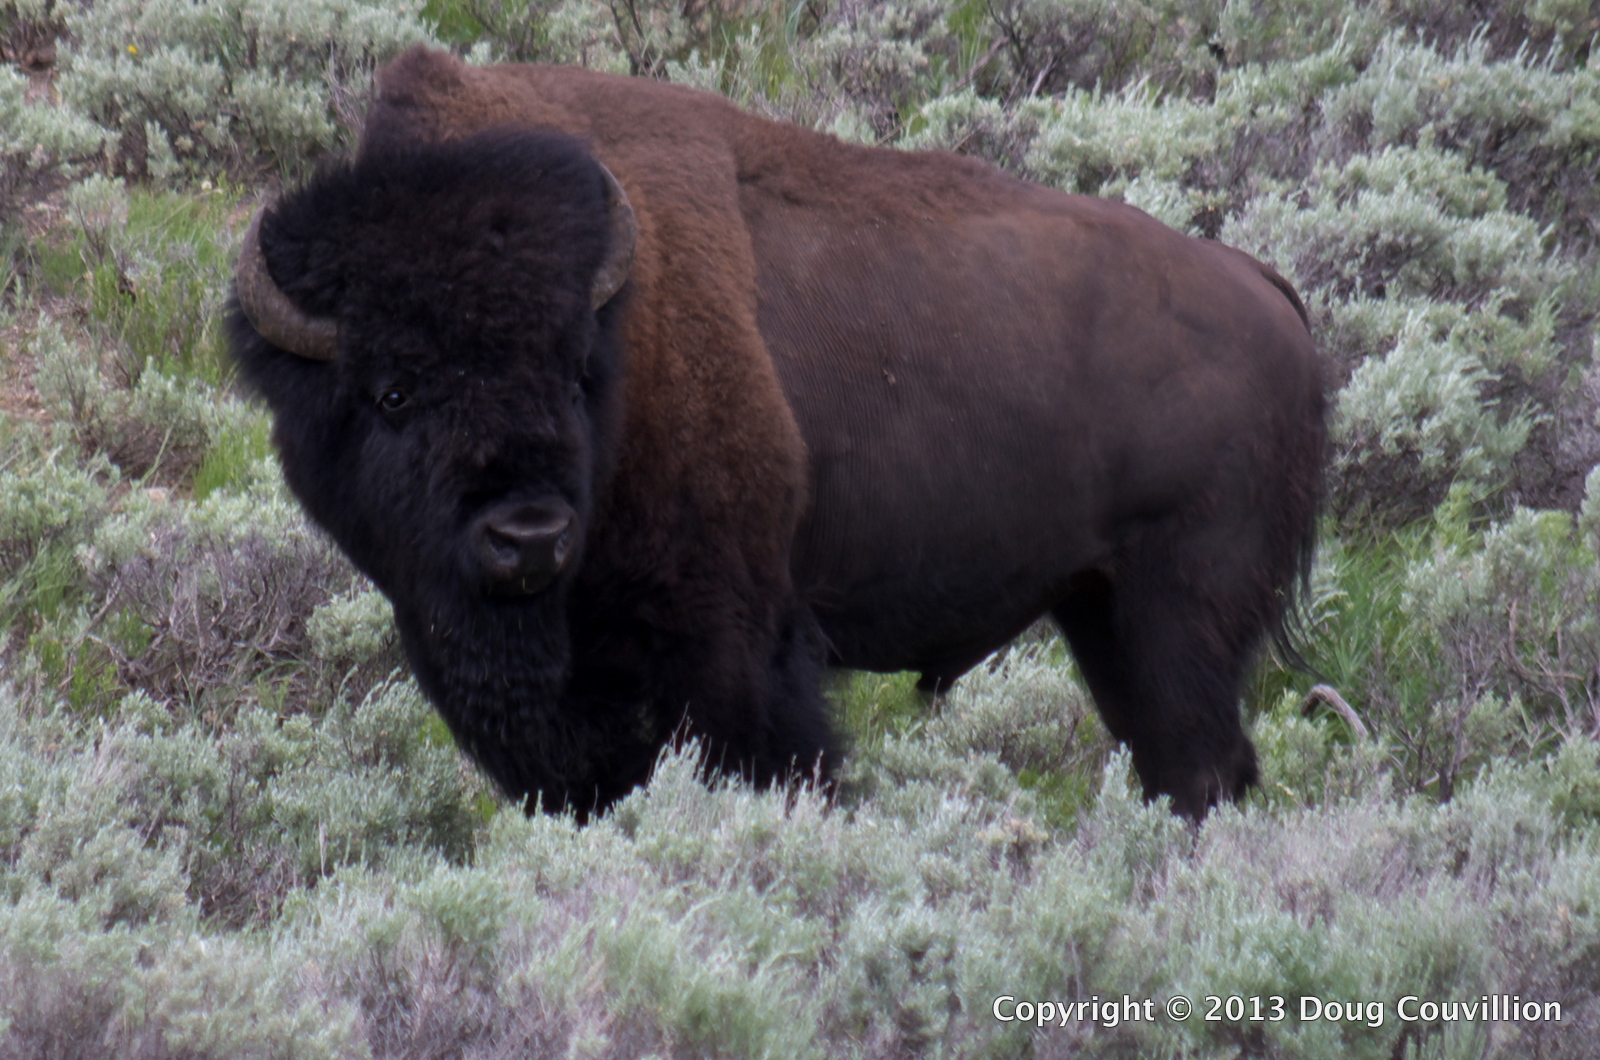 photograph of an American bison in Yellowstone National Park